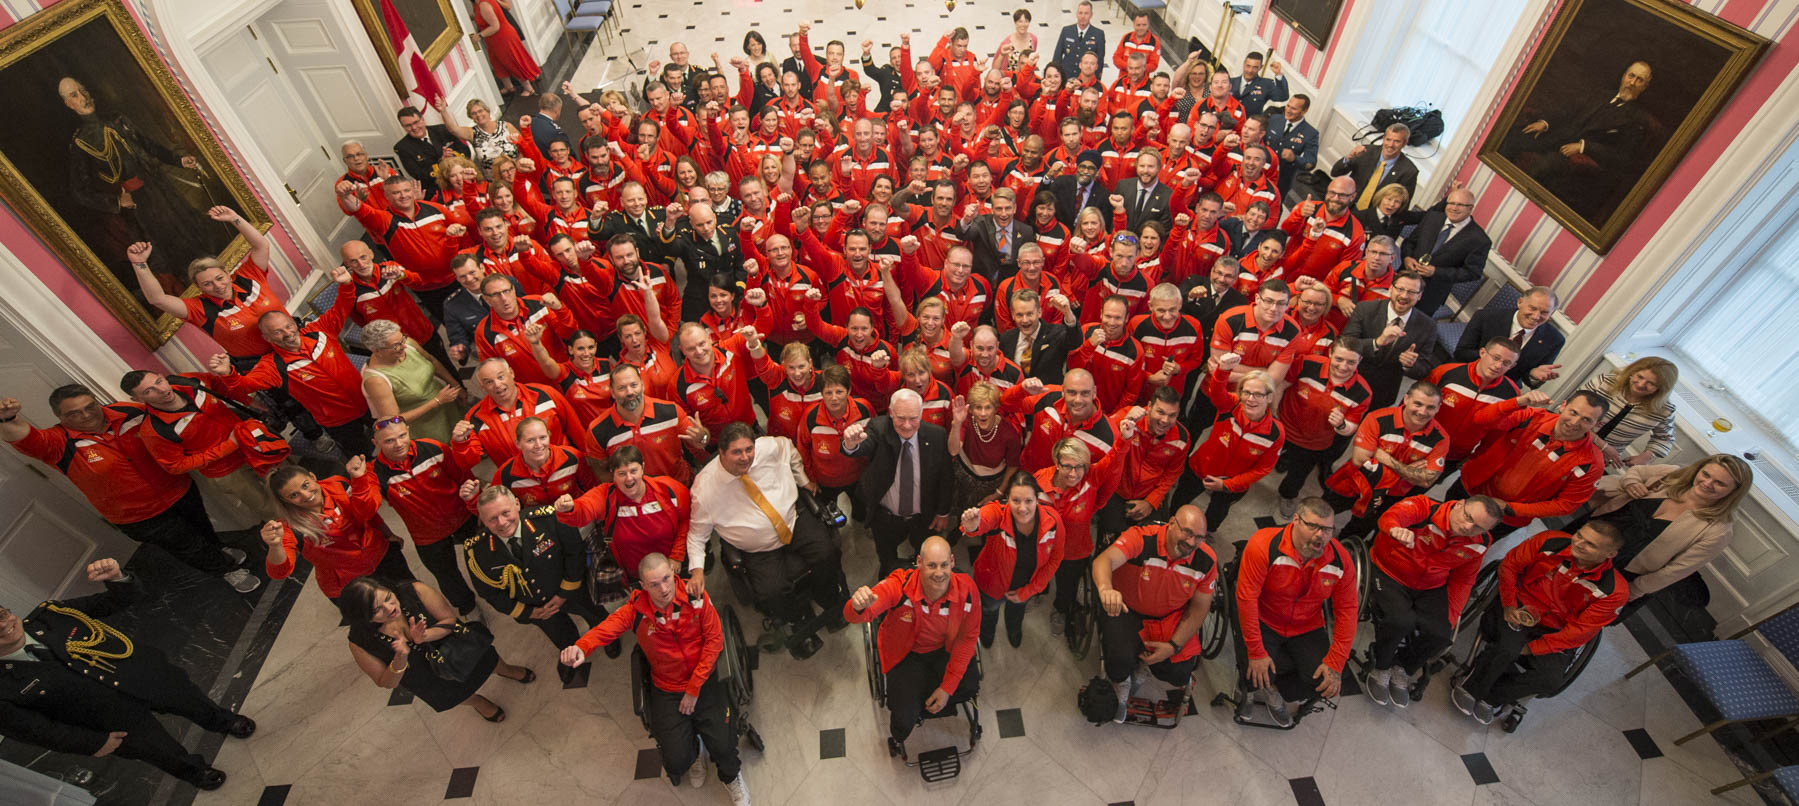 Their Excellencies welcomed Team Canada athletes who will be competing in the Toronto 2017 Invictus Games during a reception at Rideau Hall on September 20, 2017.